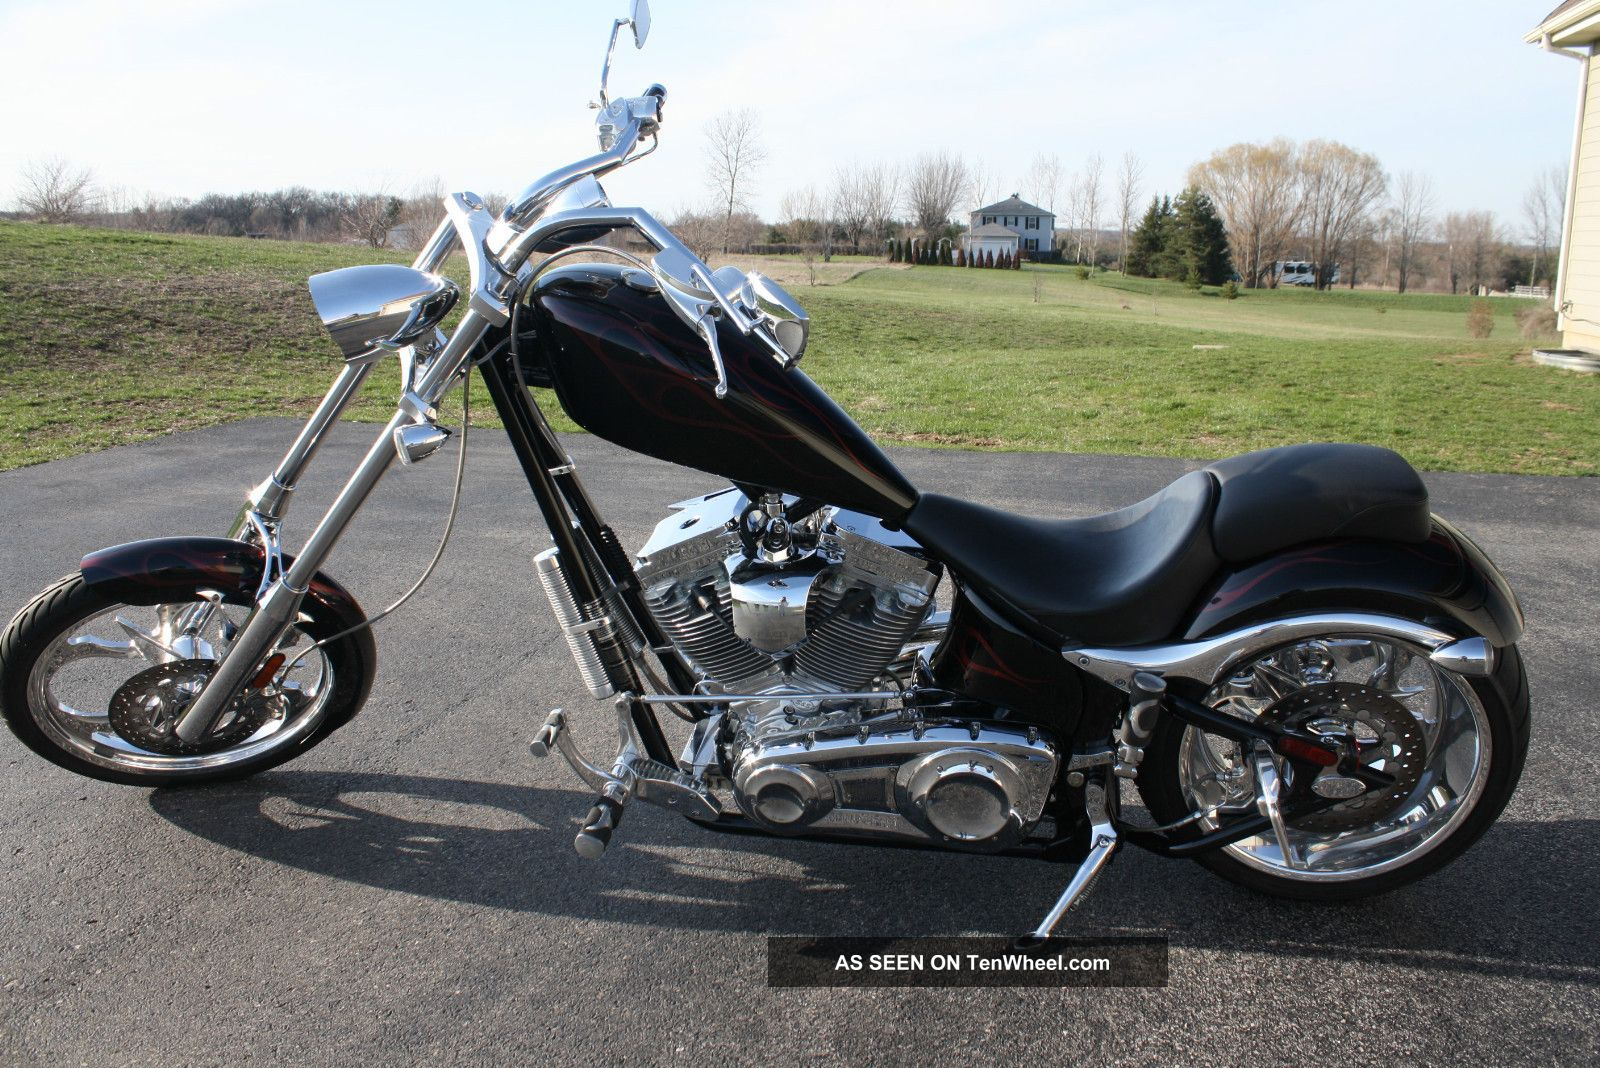 RepairGuideContent furthermore Big Dog Custom Motorcycles For Sale Used Motorcycles On furthermore American Ironhorse Wiring Diagram together with Eager Beaver Wiring Diagram together with Qiye Mini Chopper Wiring Diagram Diagrams. on american ironhorse schematic